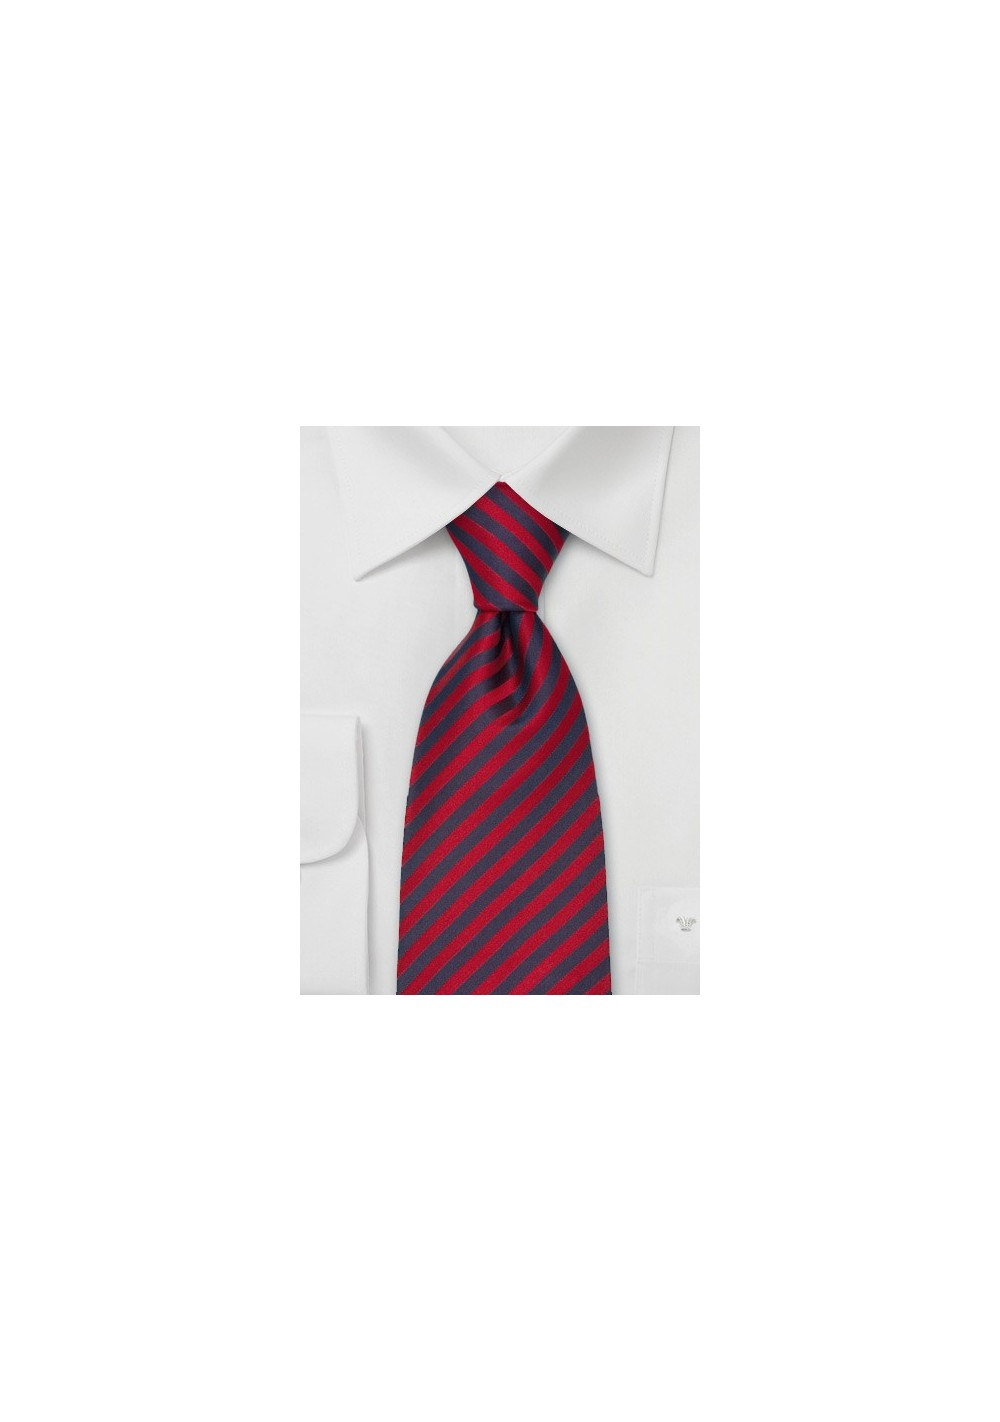 Extra Long Ties - Red & Blue Striped Tie in XL